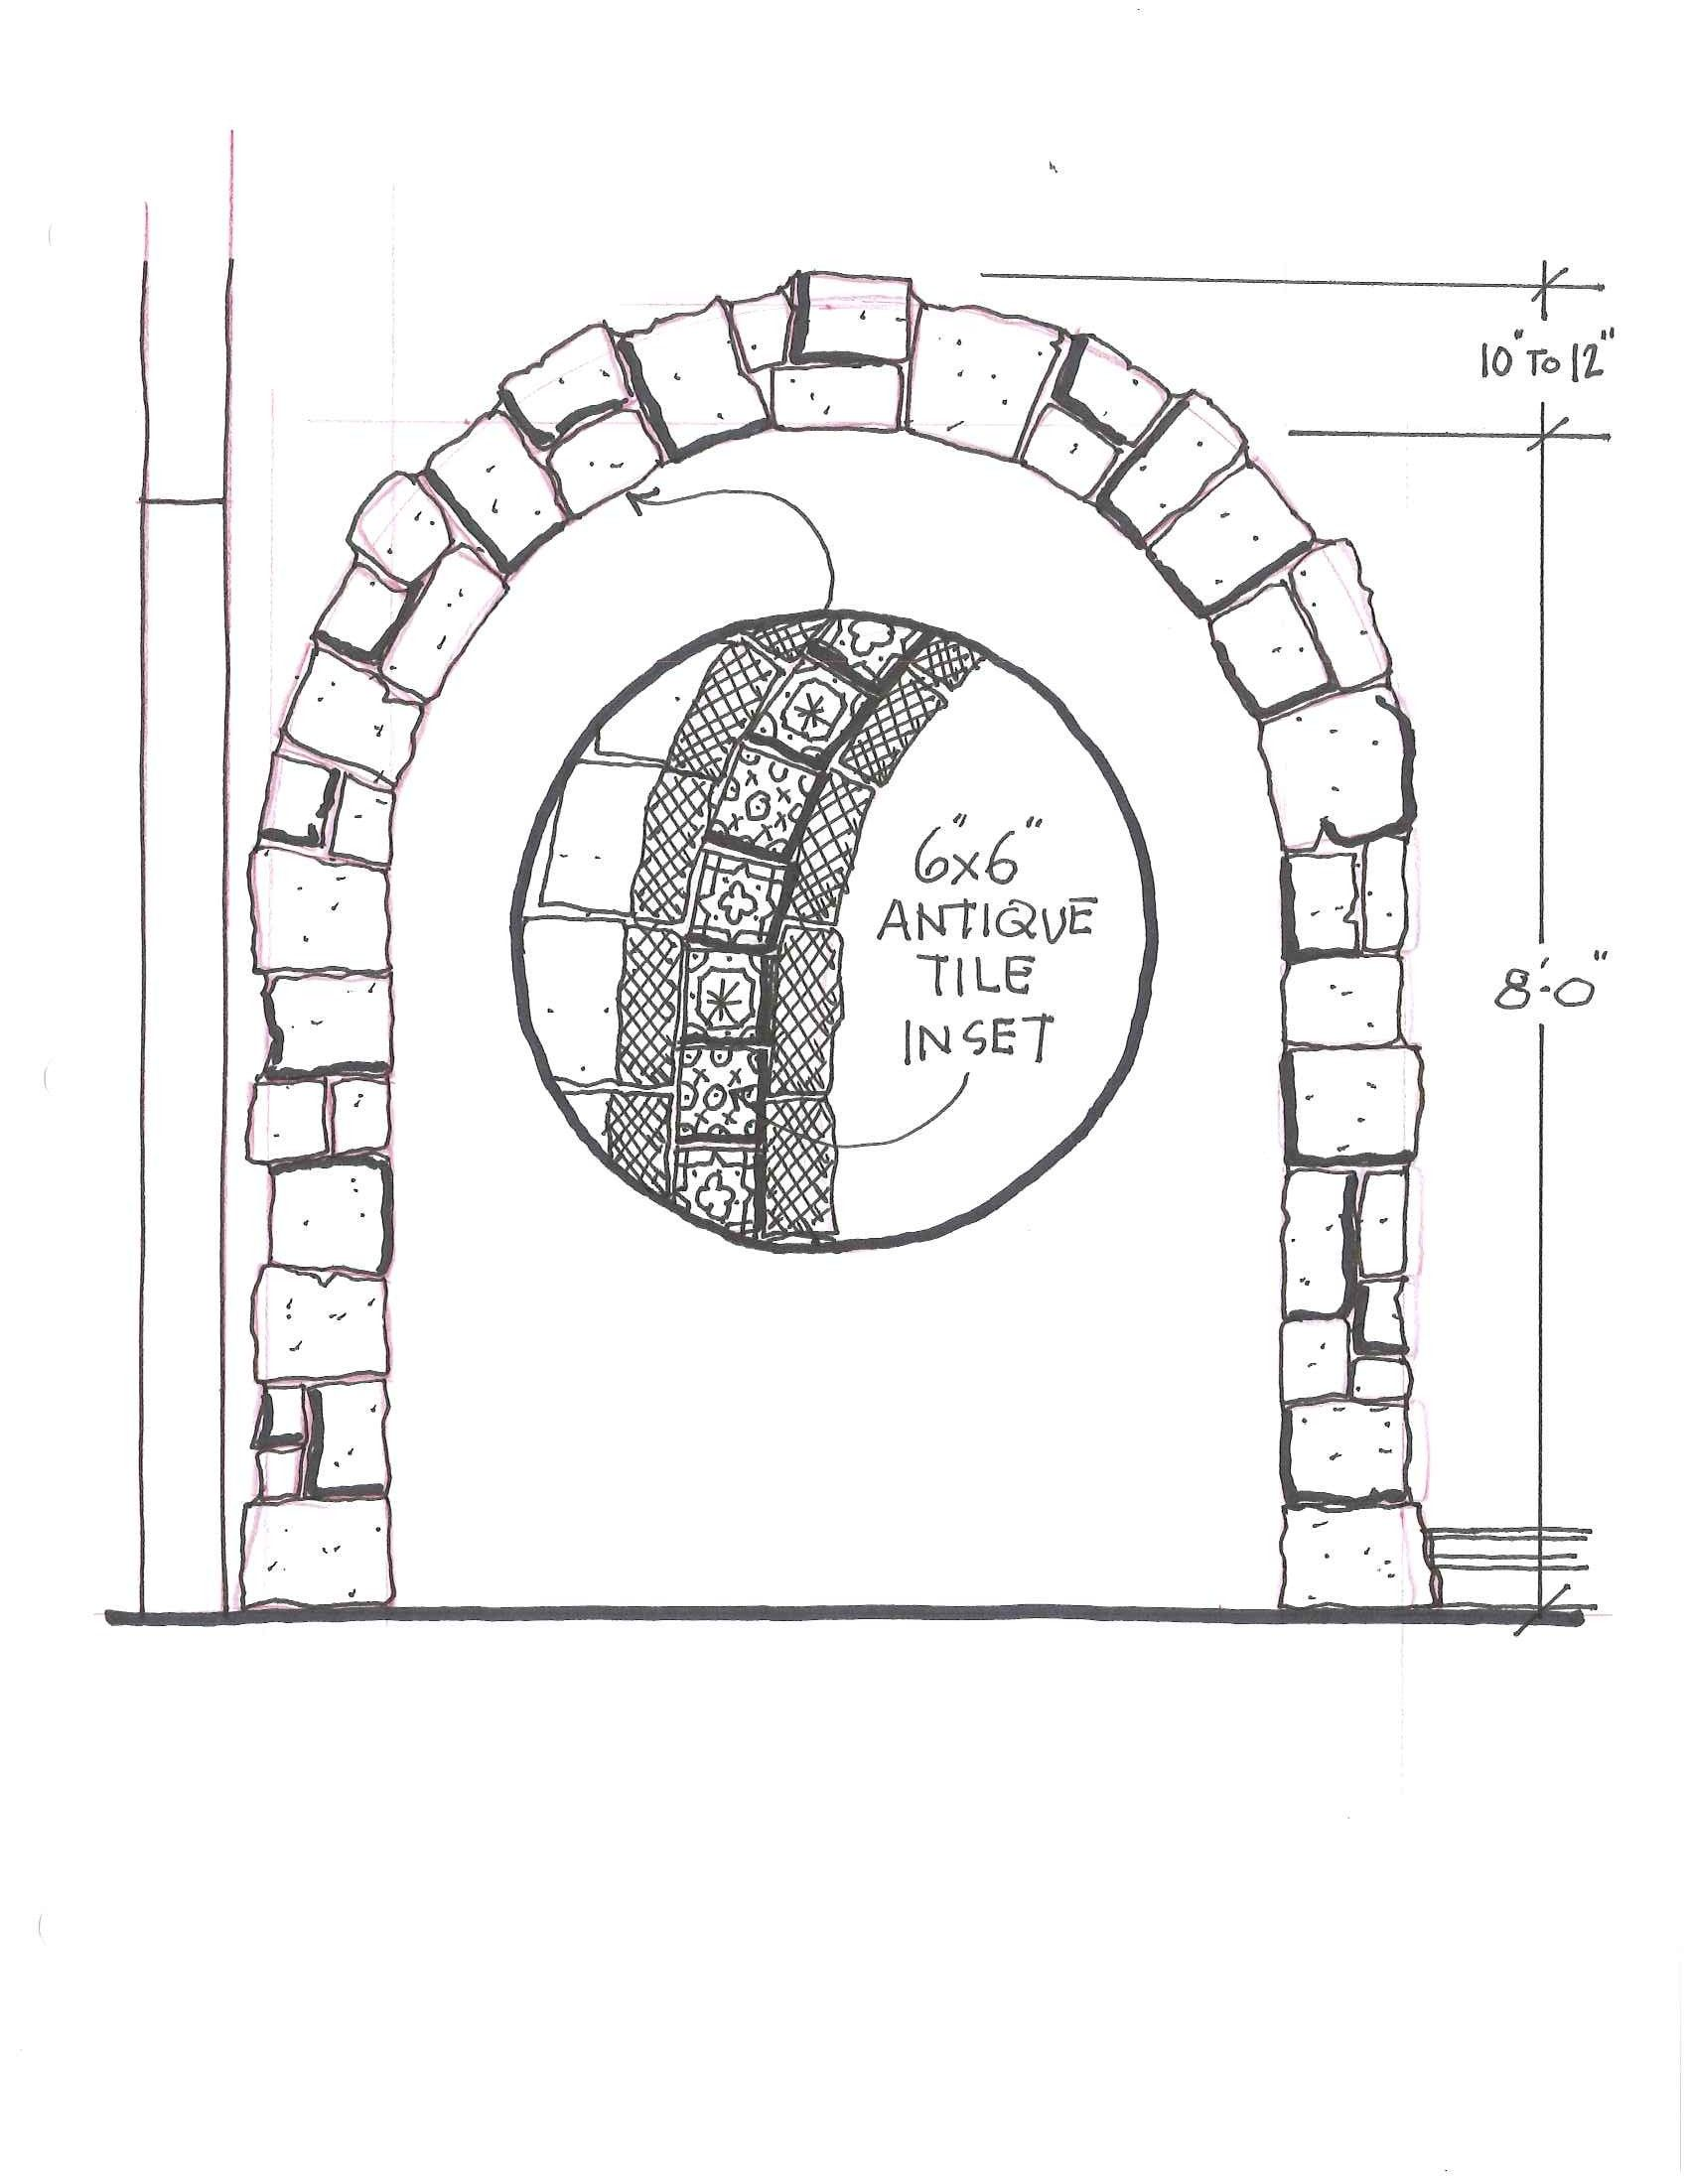 Archway Arch Stone Archway Antique Tiles Interior Design Drawing Sketch